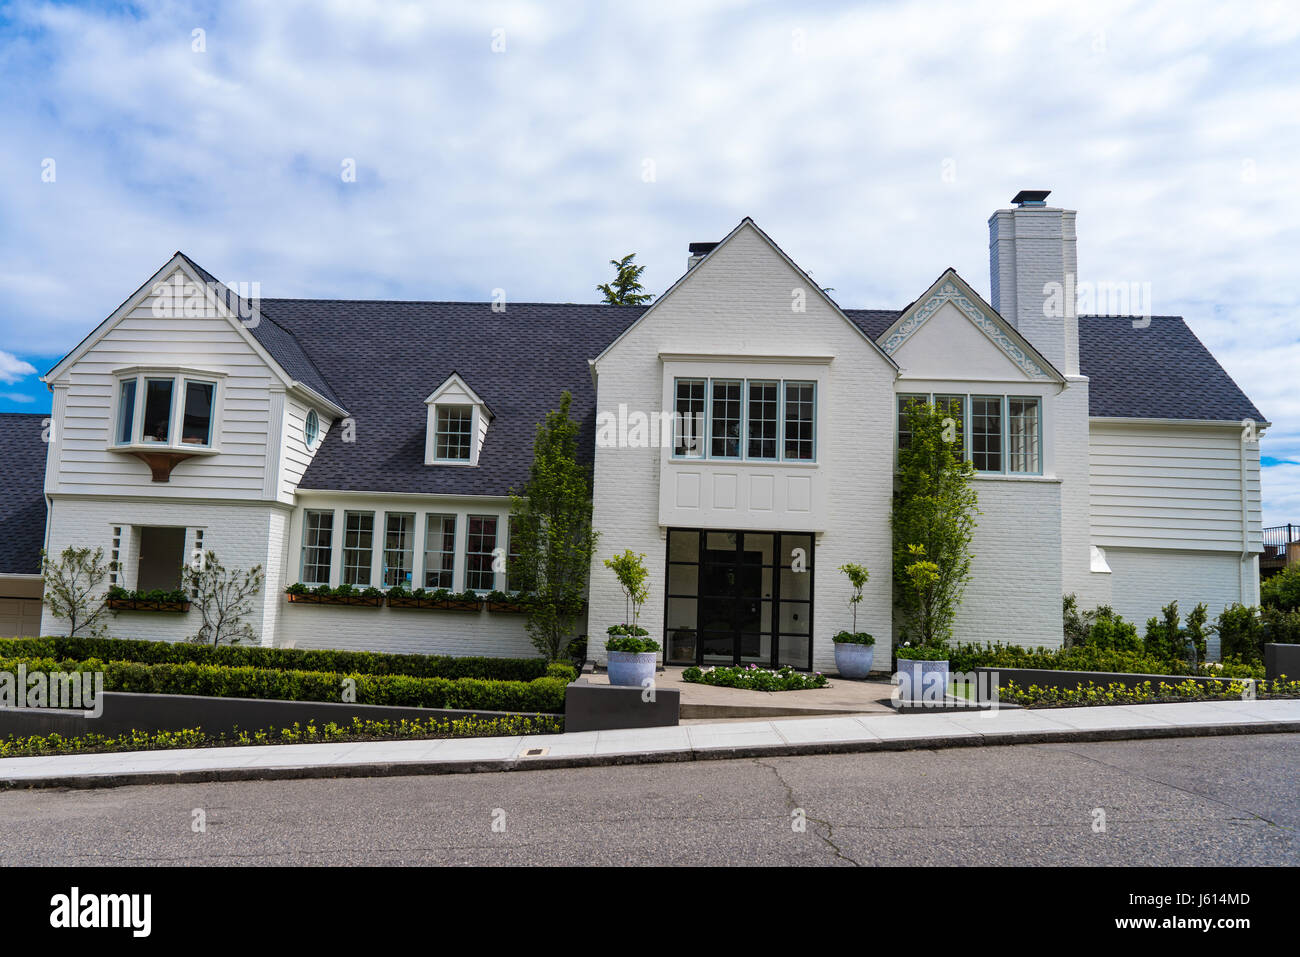 Expensive Suburban White Brick House With Landscaping